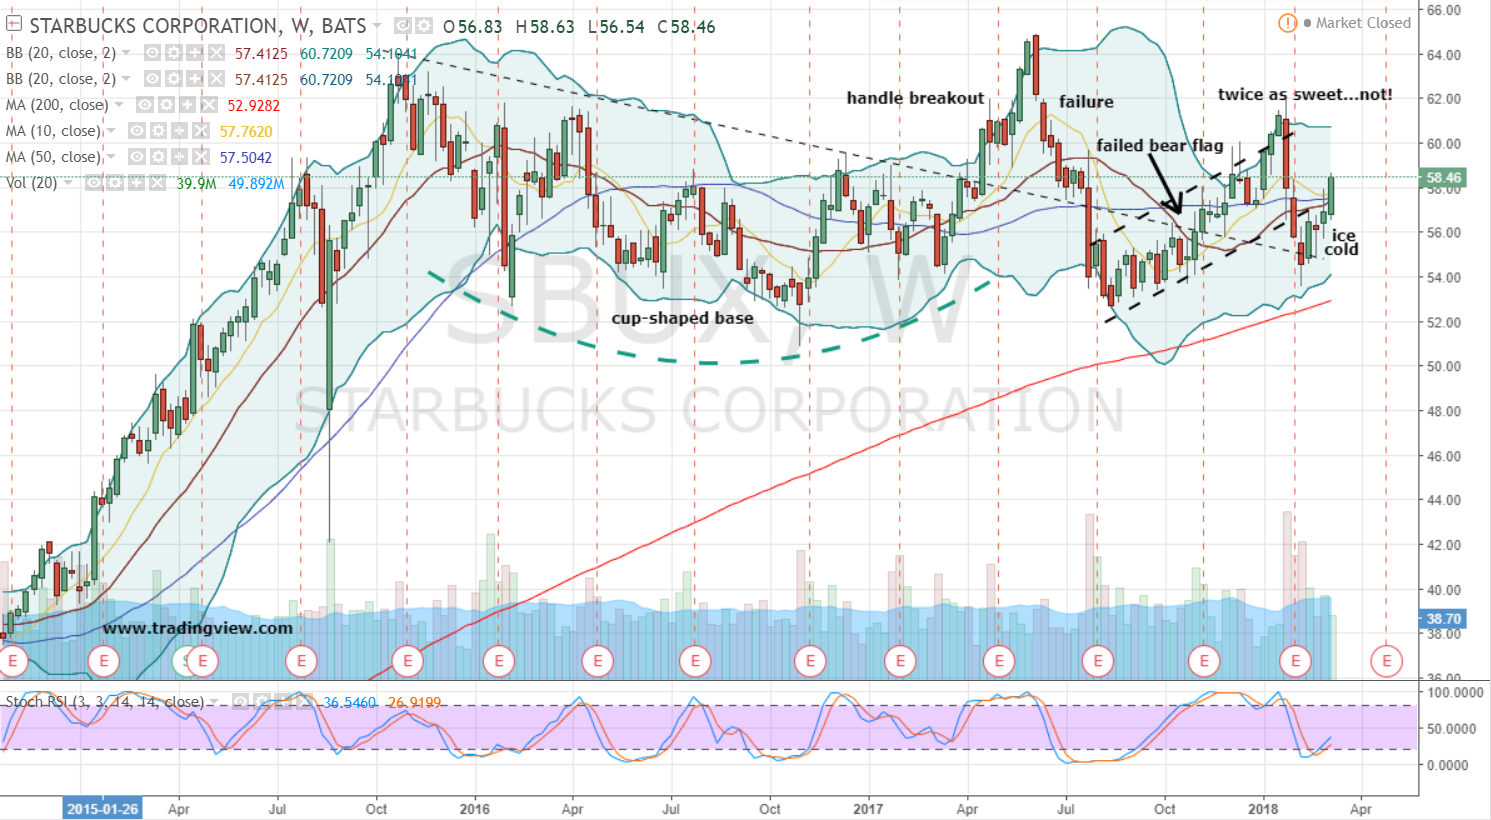 Could Starbucks Corporation (NASDAQ:SBUX) Skyrocket? The Stock Had Too Little Sellers